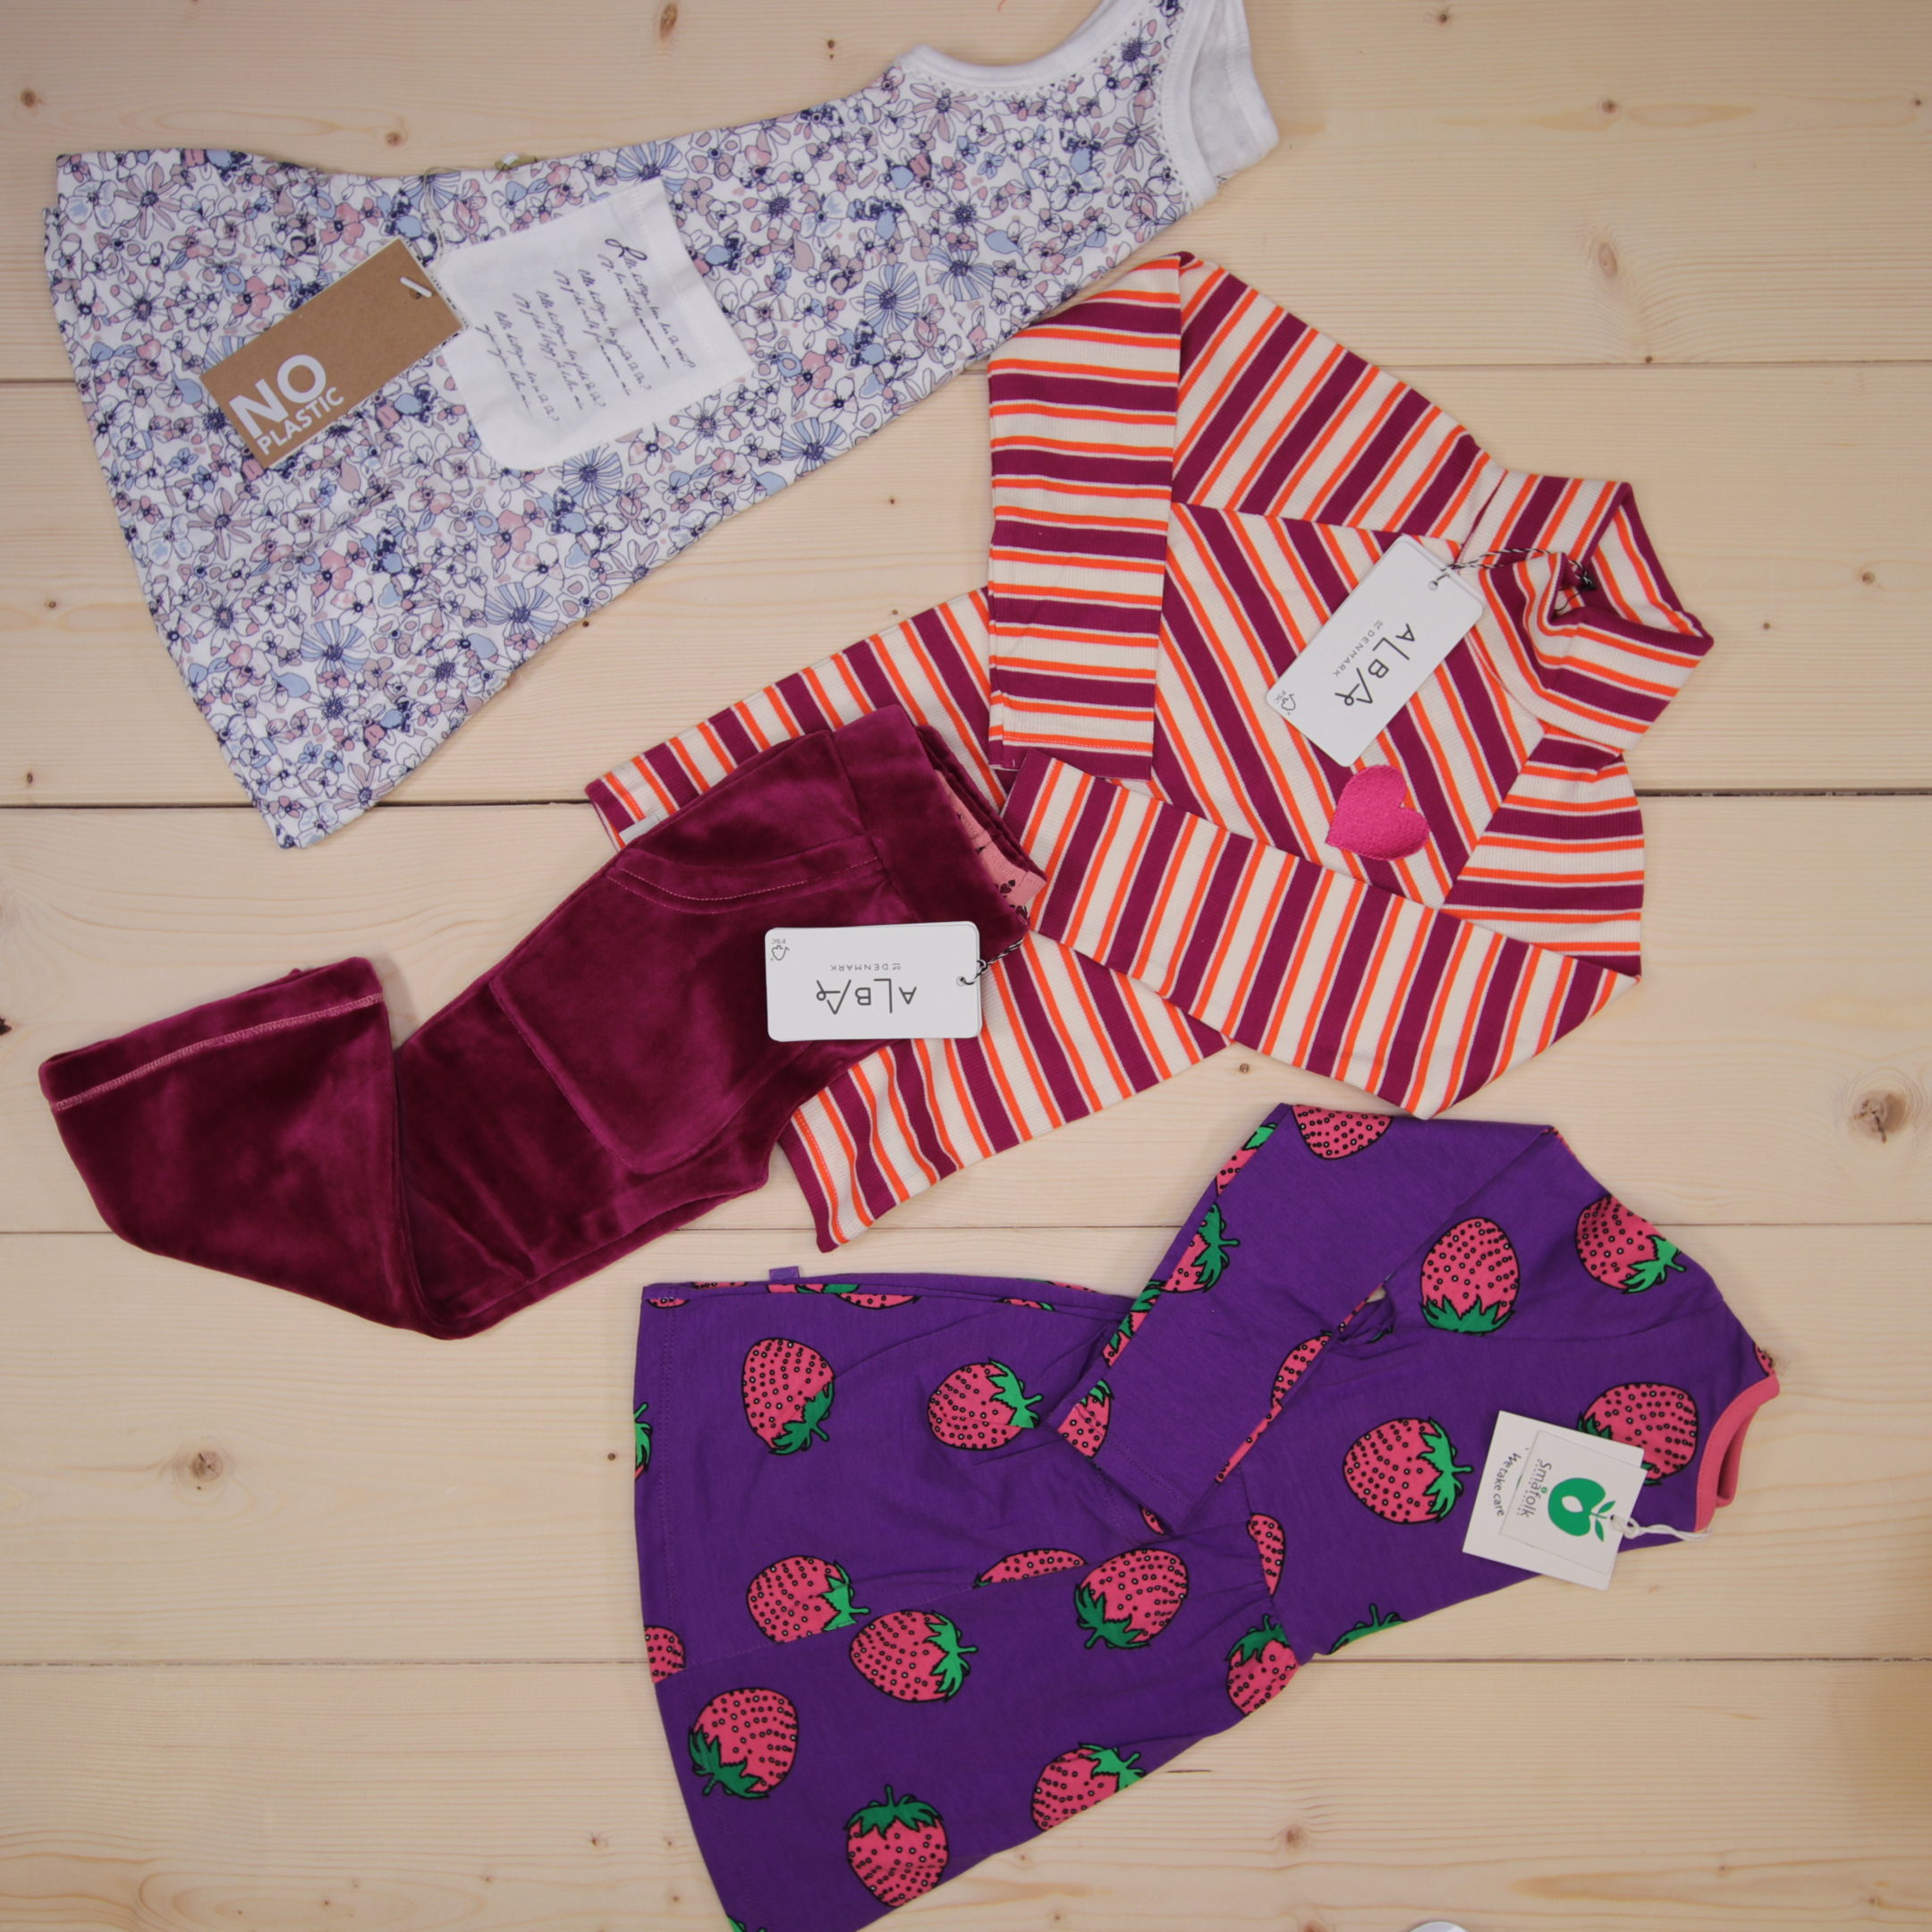 This is a 125 GBP* Småkassen that we prepared for a girl  in the style cute in size 98